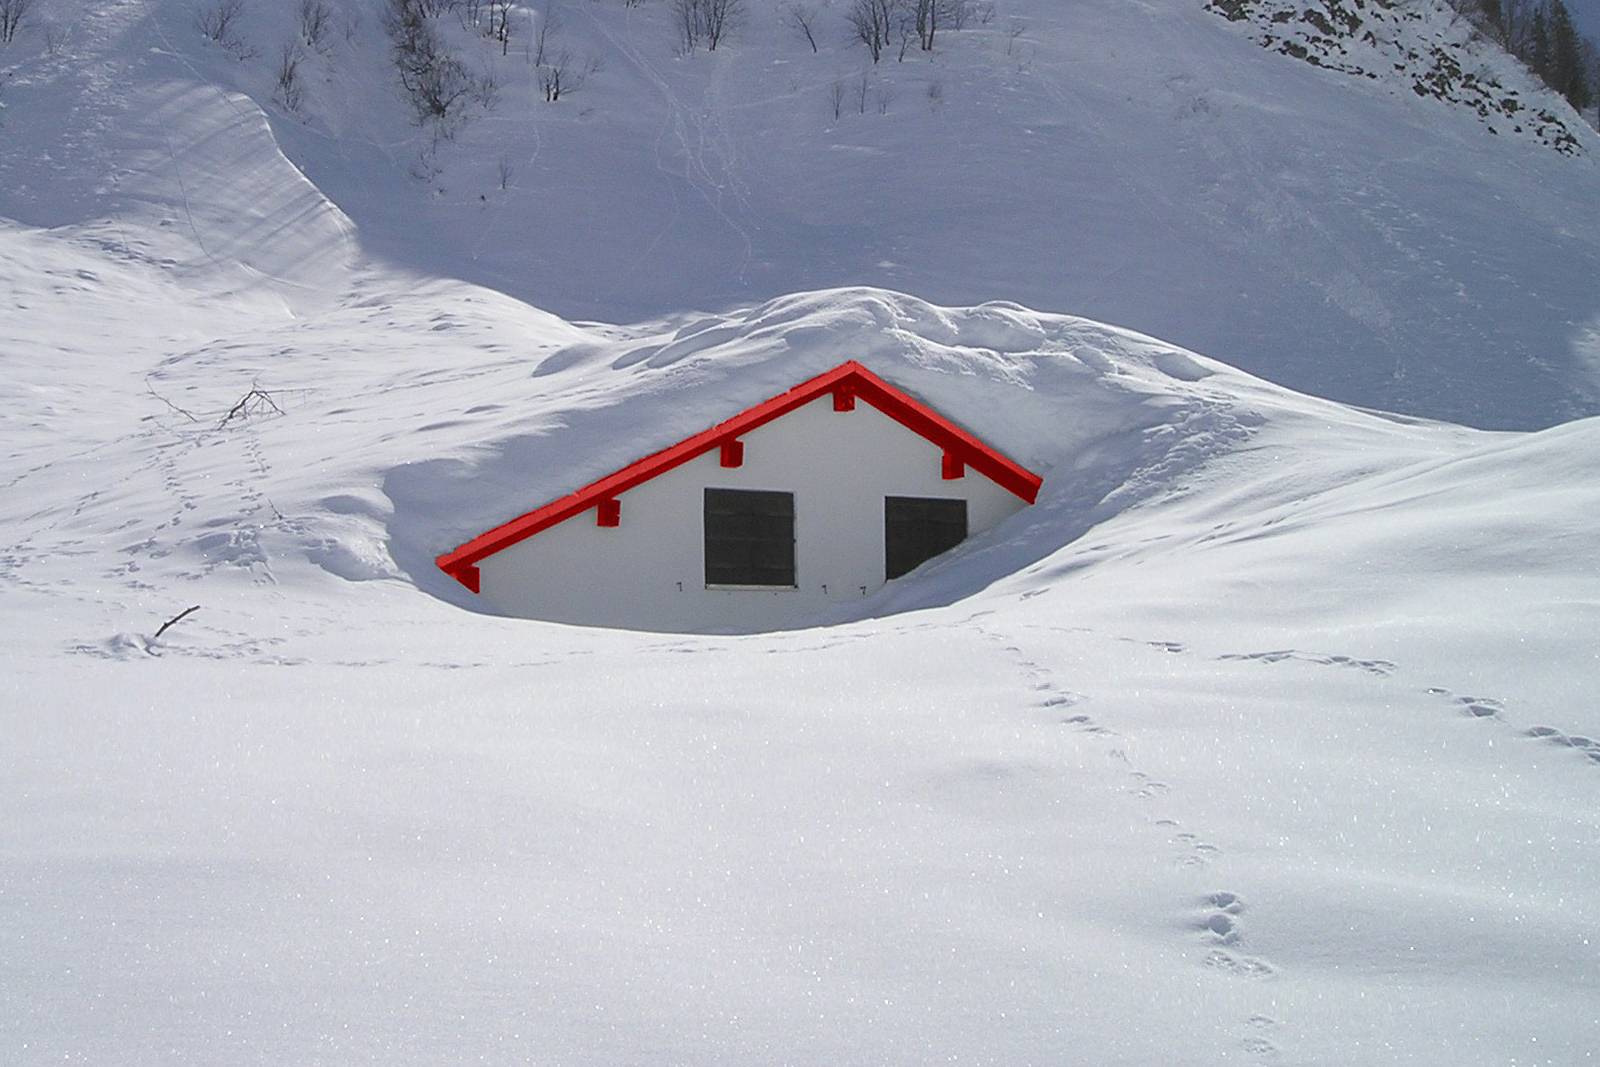 snow-removal-roof-buried-standard_ee74a28a036f83e1aae8d5d7ee01e40f.jpg